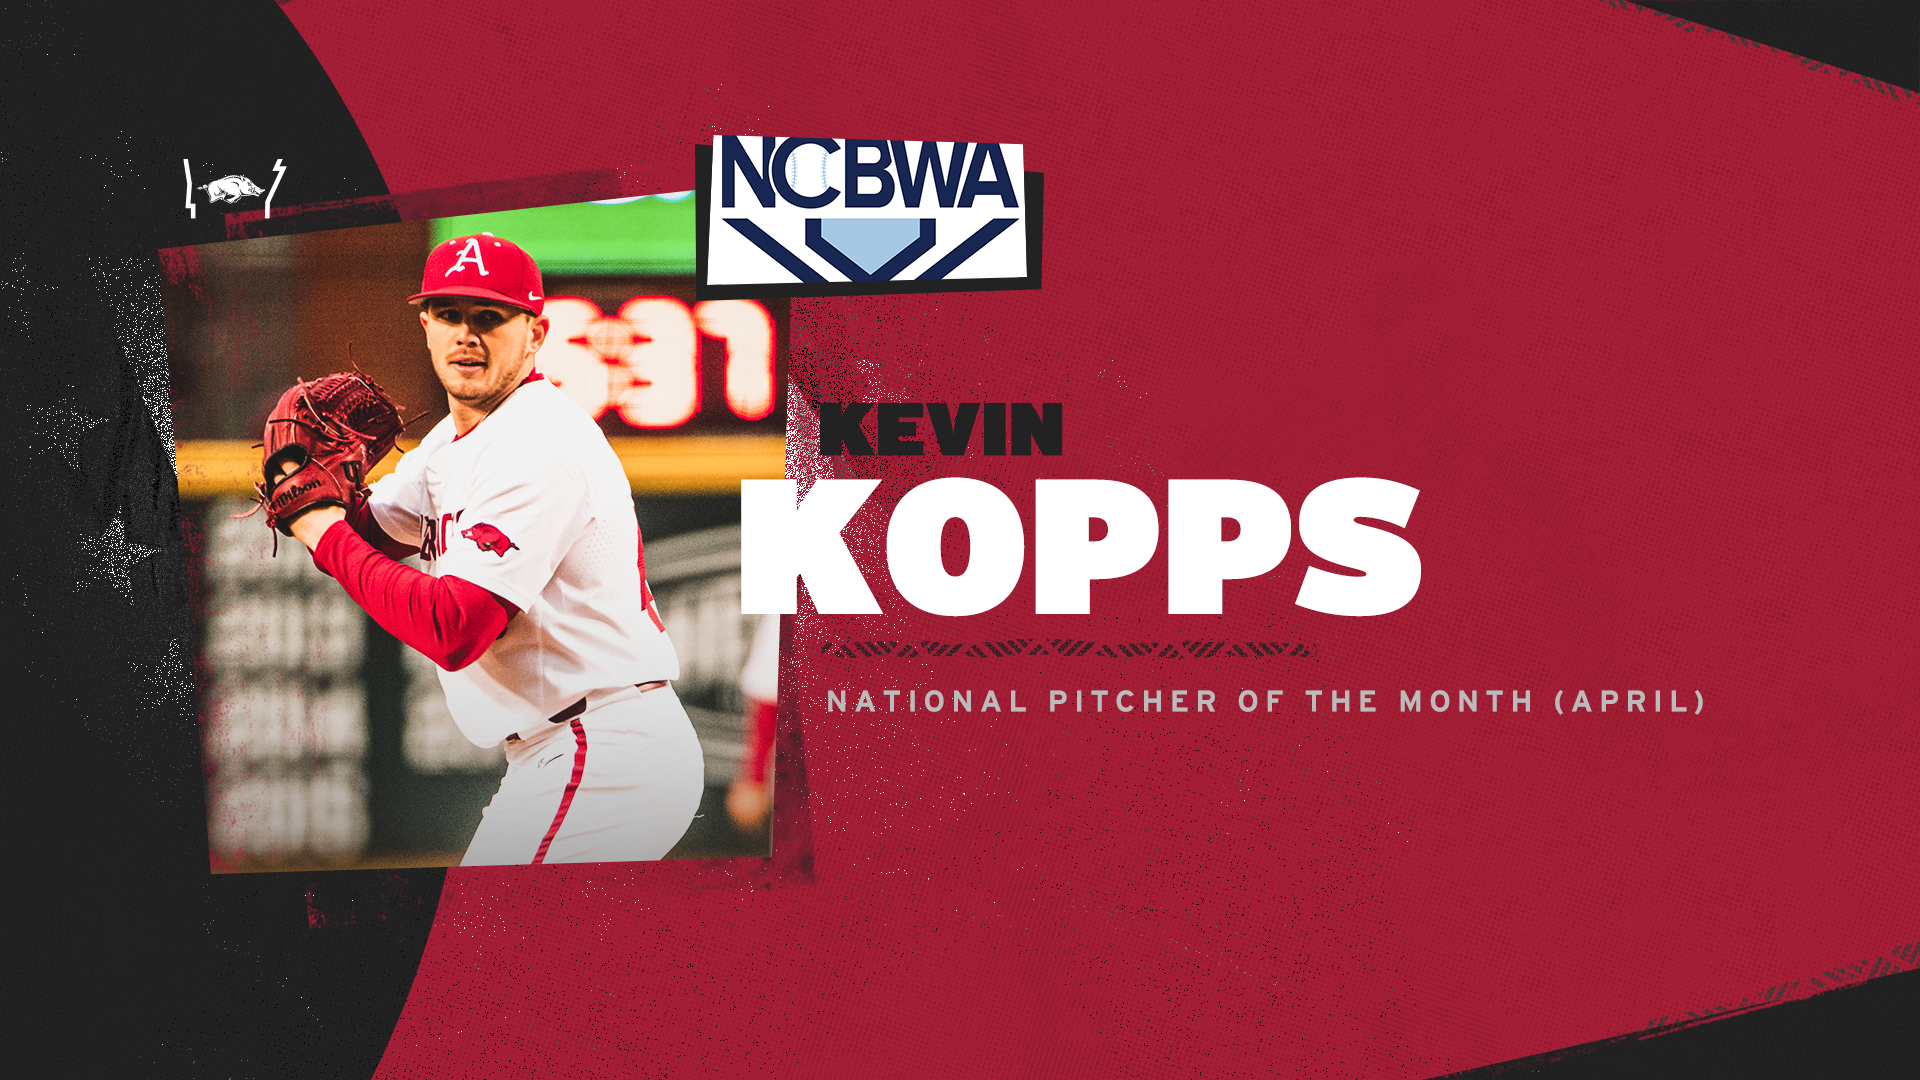 Kopps Named NCBWA National Pitcher of the Month